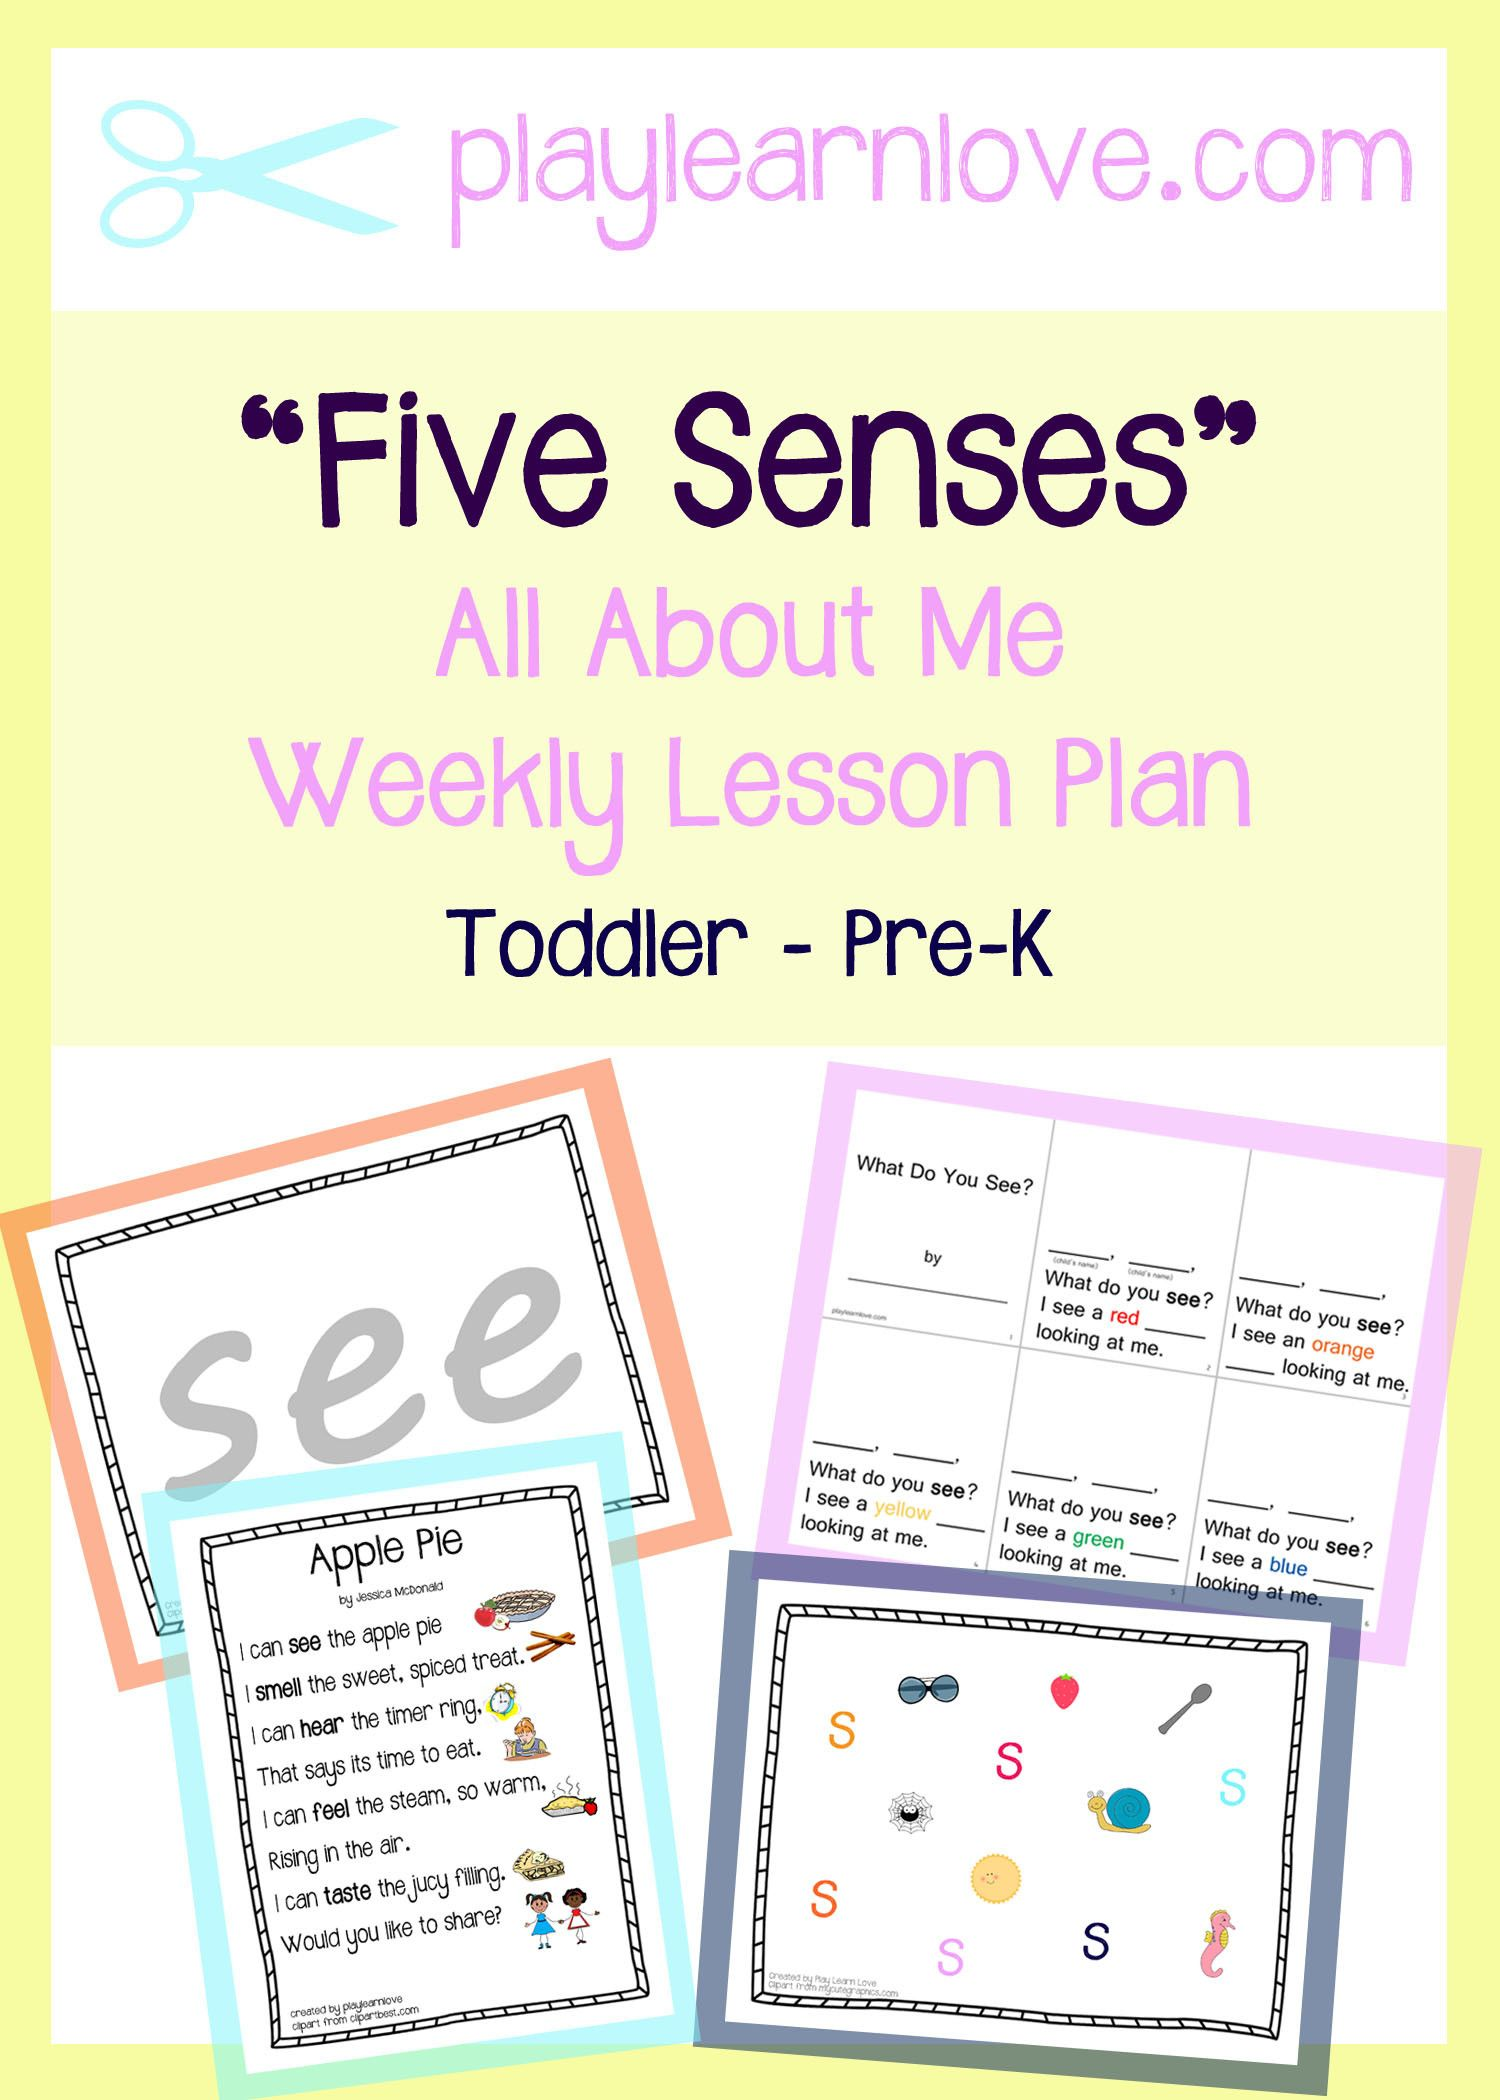 Five Senses Lesson Plan Preschool And Toddler All